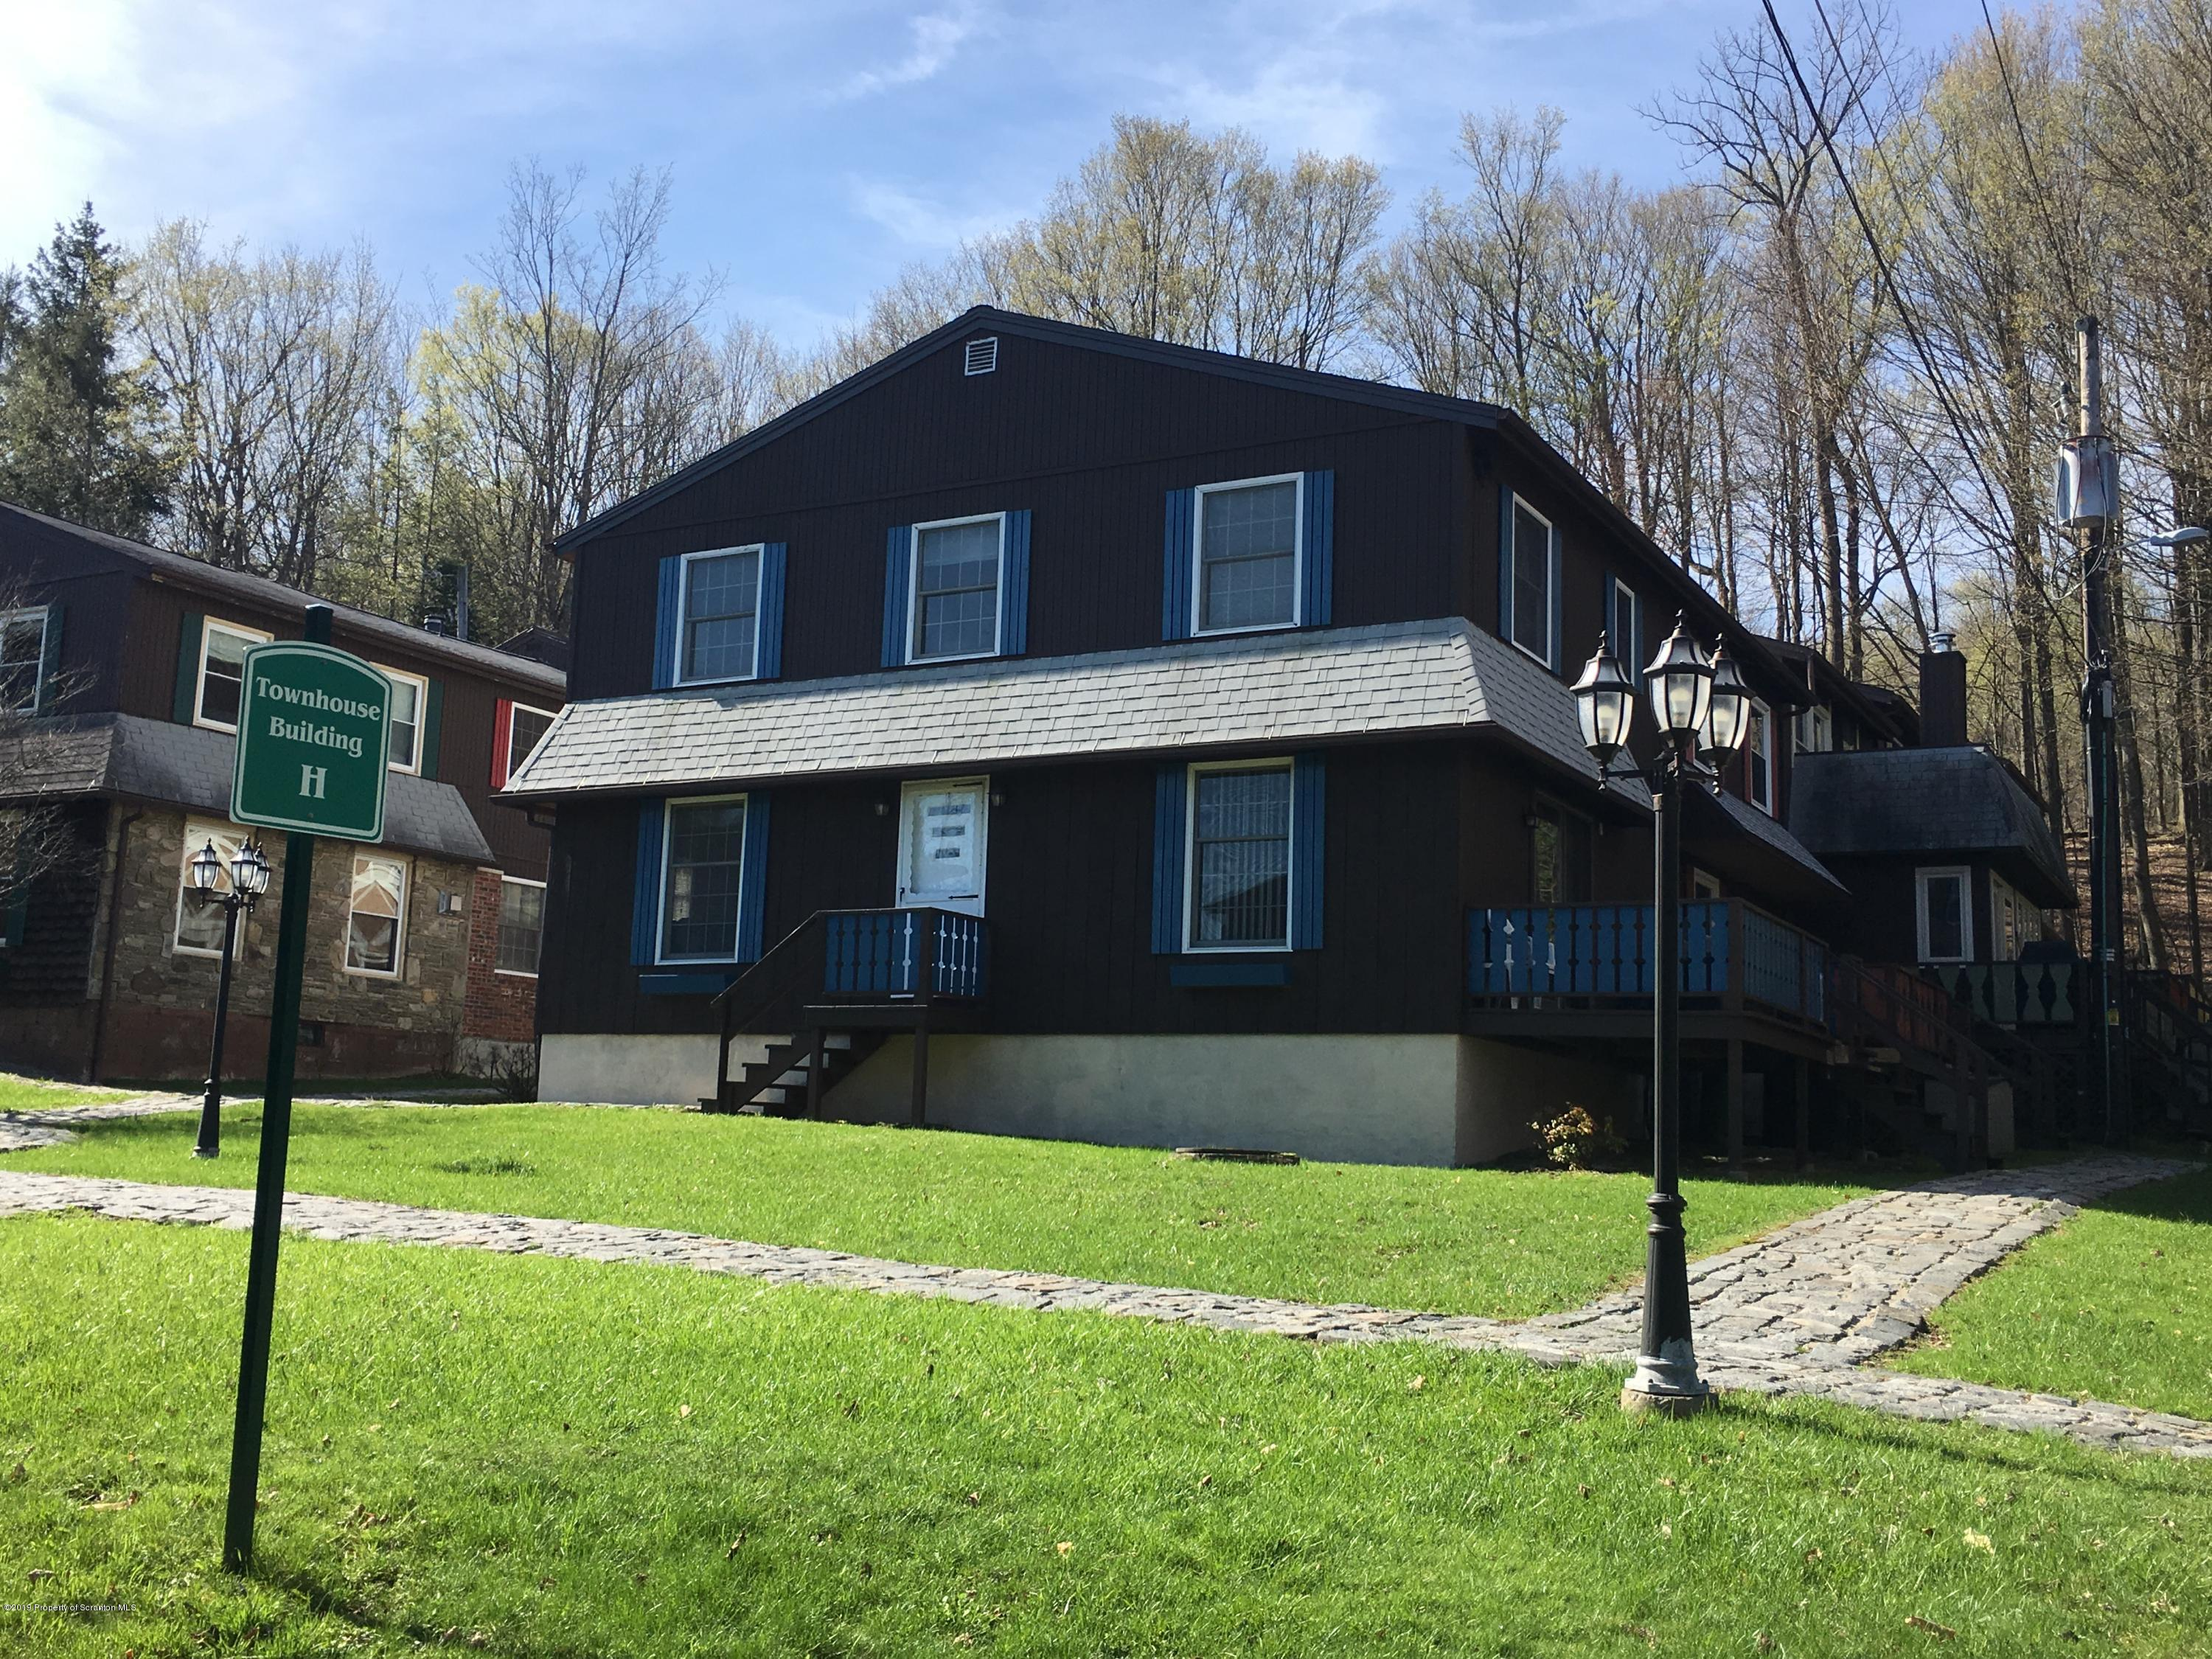 T-1 120 Scenic Ln, Union Dale, Pennsylvania 18470, 3 Bedrooms Bedrooms, 6 Rooms Rooms,2 BathroomsBathrooms,Residential - condo/townhome,For Sale,Scenic,19-1811